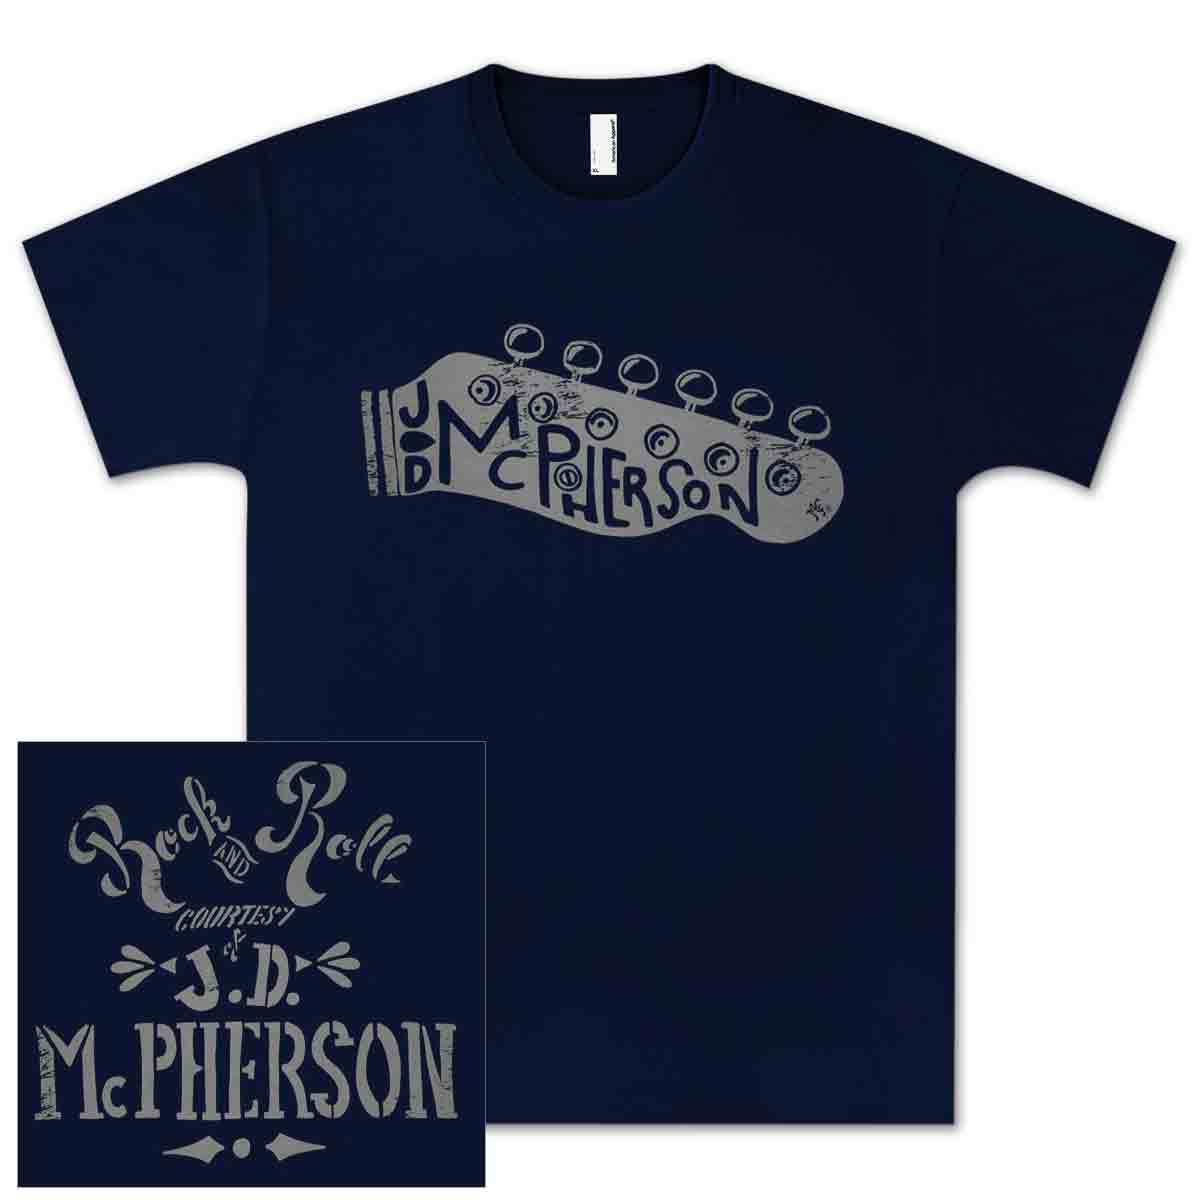 Jd mcpherson rock and roll t shirt shop the musictoday for Rock and roll shirt shop